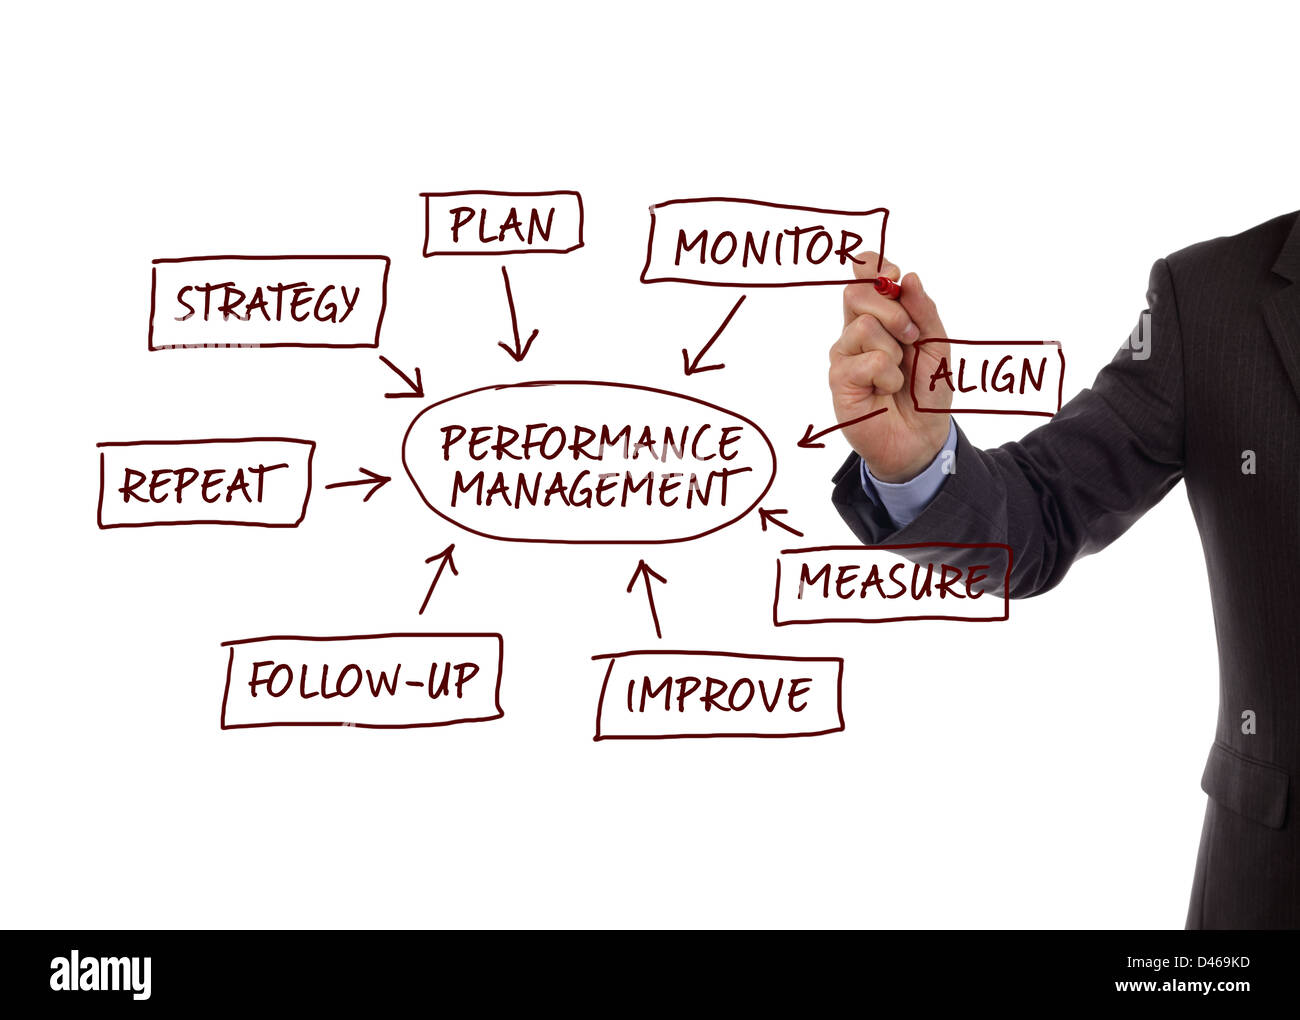 Performance-Management-Prozess-Diagramm Stockbild